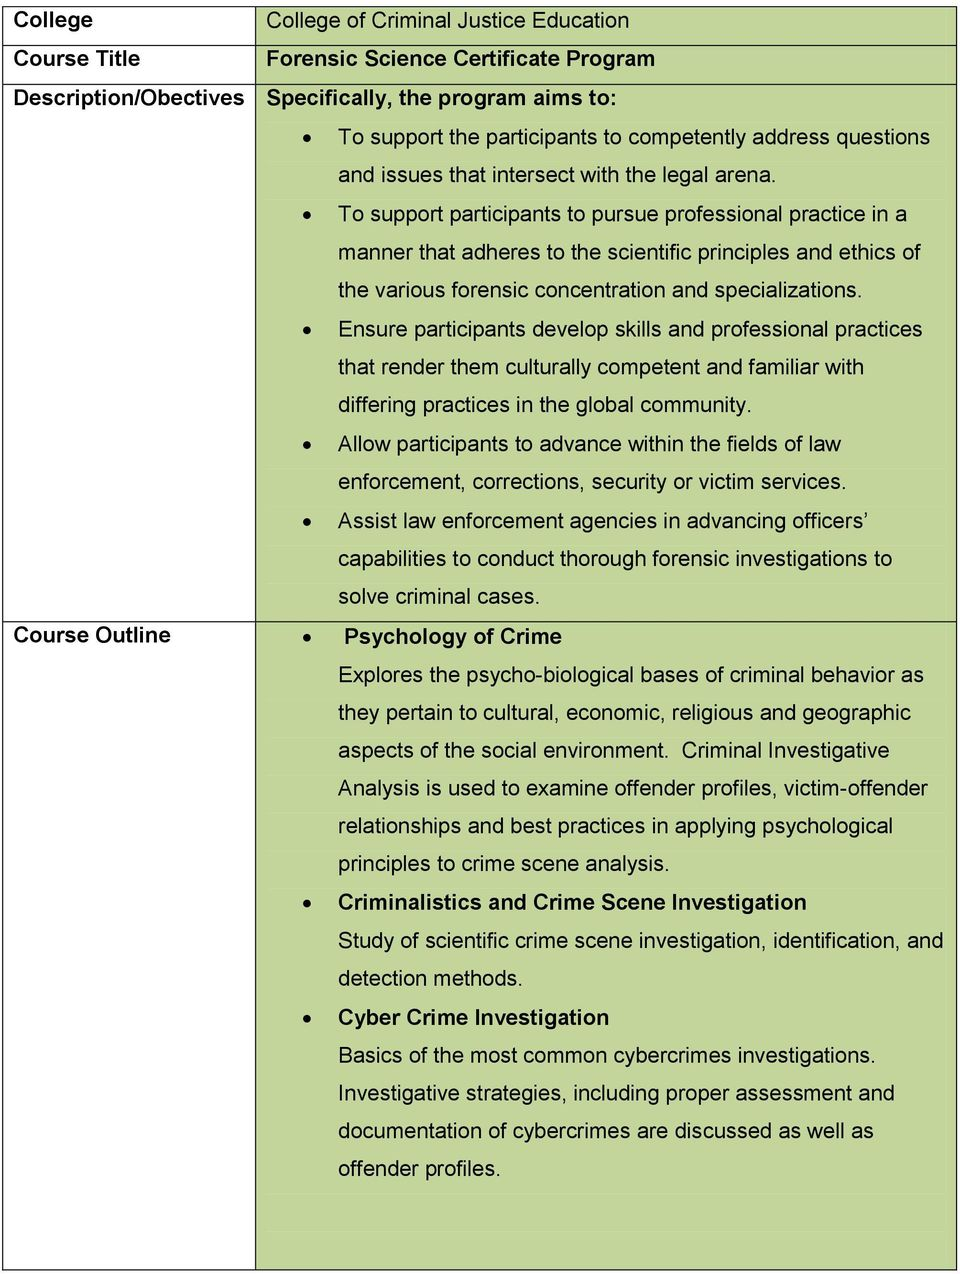 To support participants to pursue professional practice in a manner that adheres to the scientific principles and ethics of the various forensic concentration and specializations.